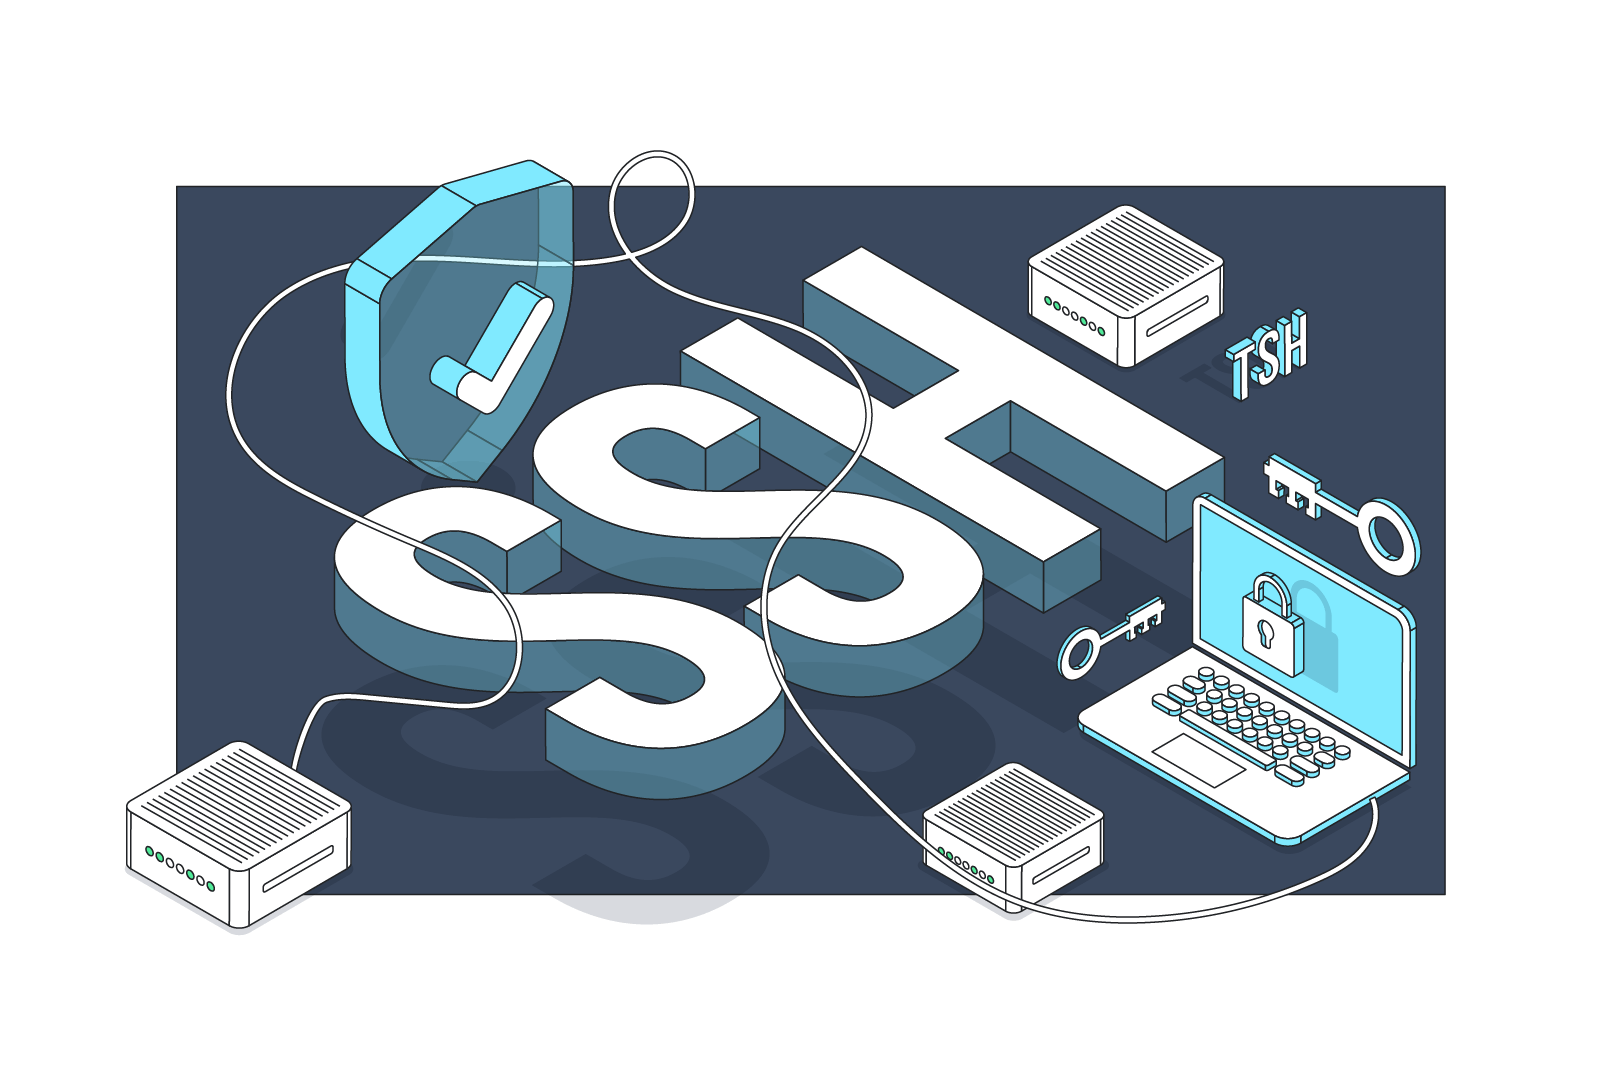 SSH tutorial – 3 tips to improve your work with SSH